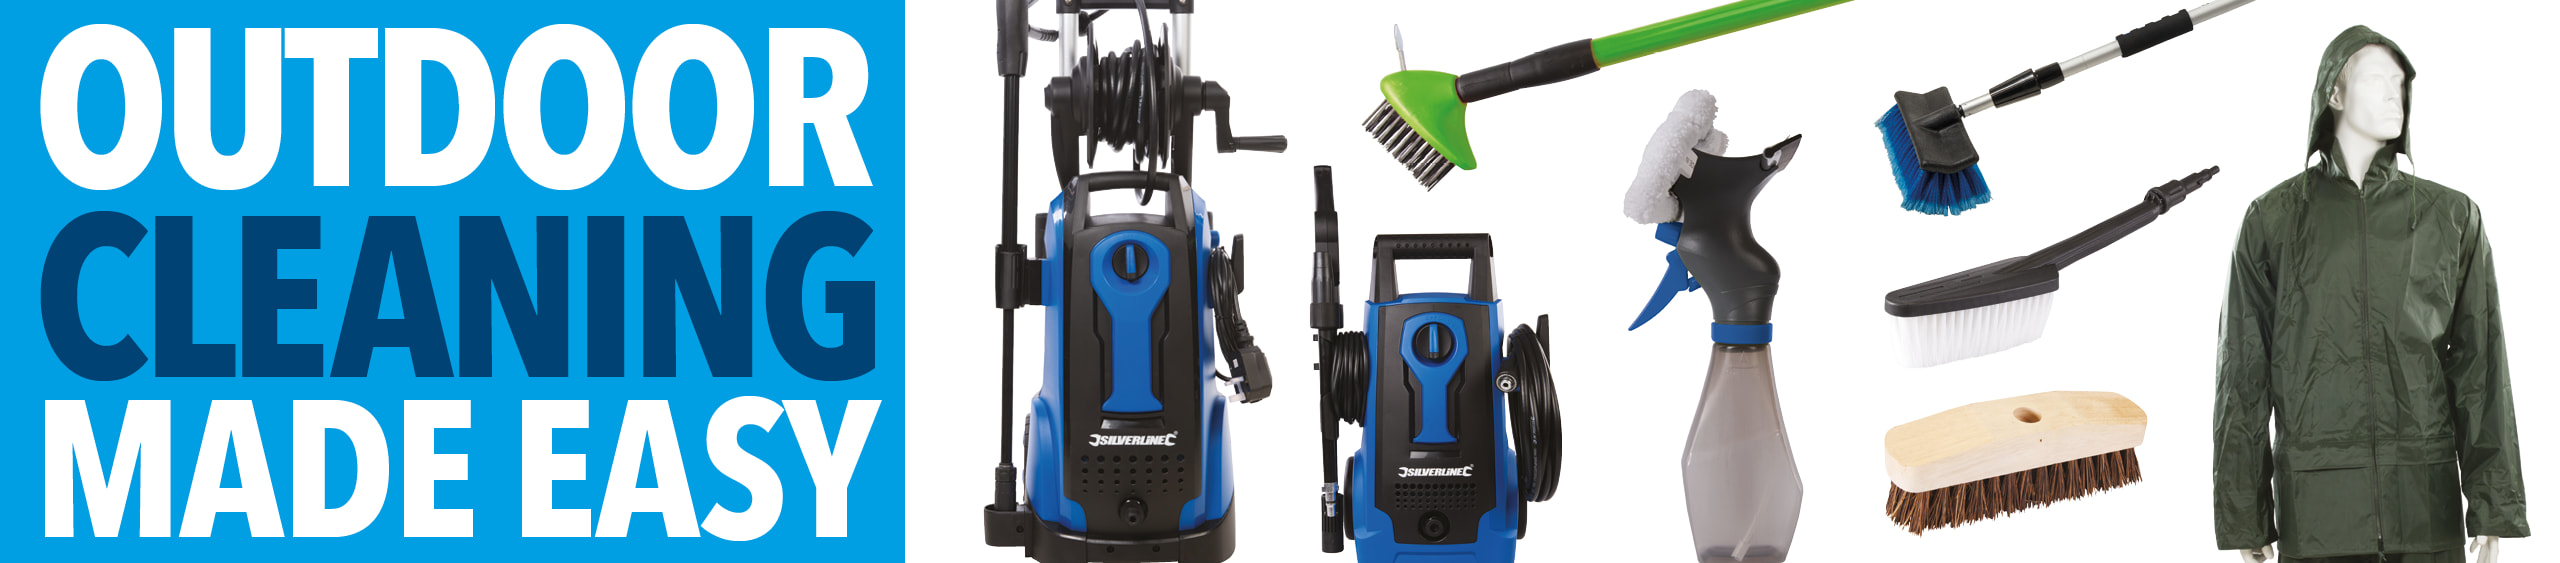 Silverline_Easy_ Outdoor_Cleaning